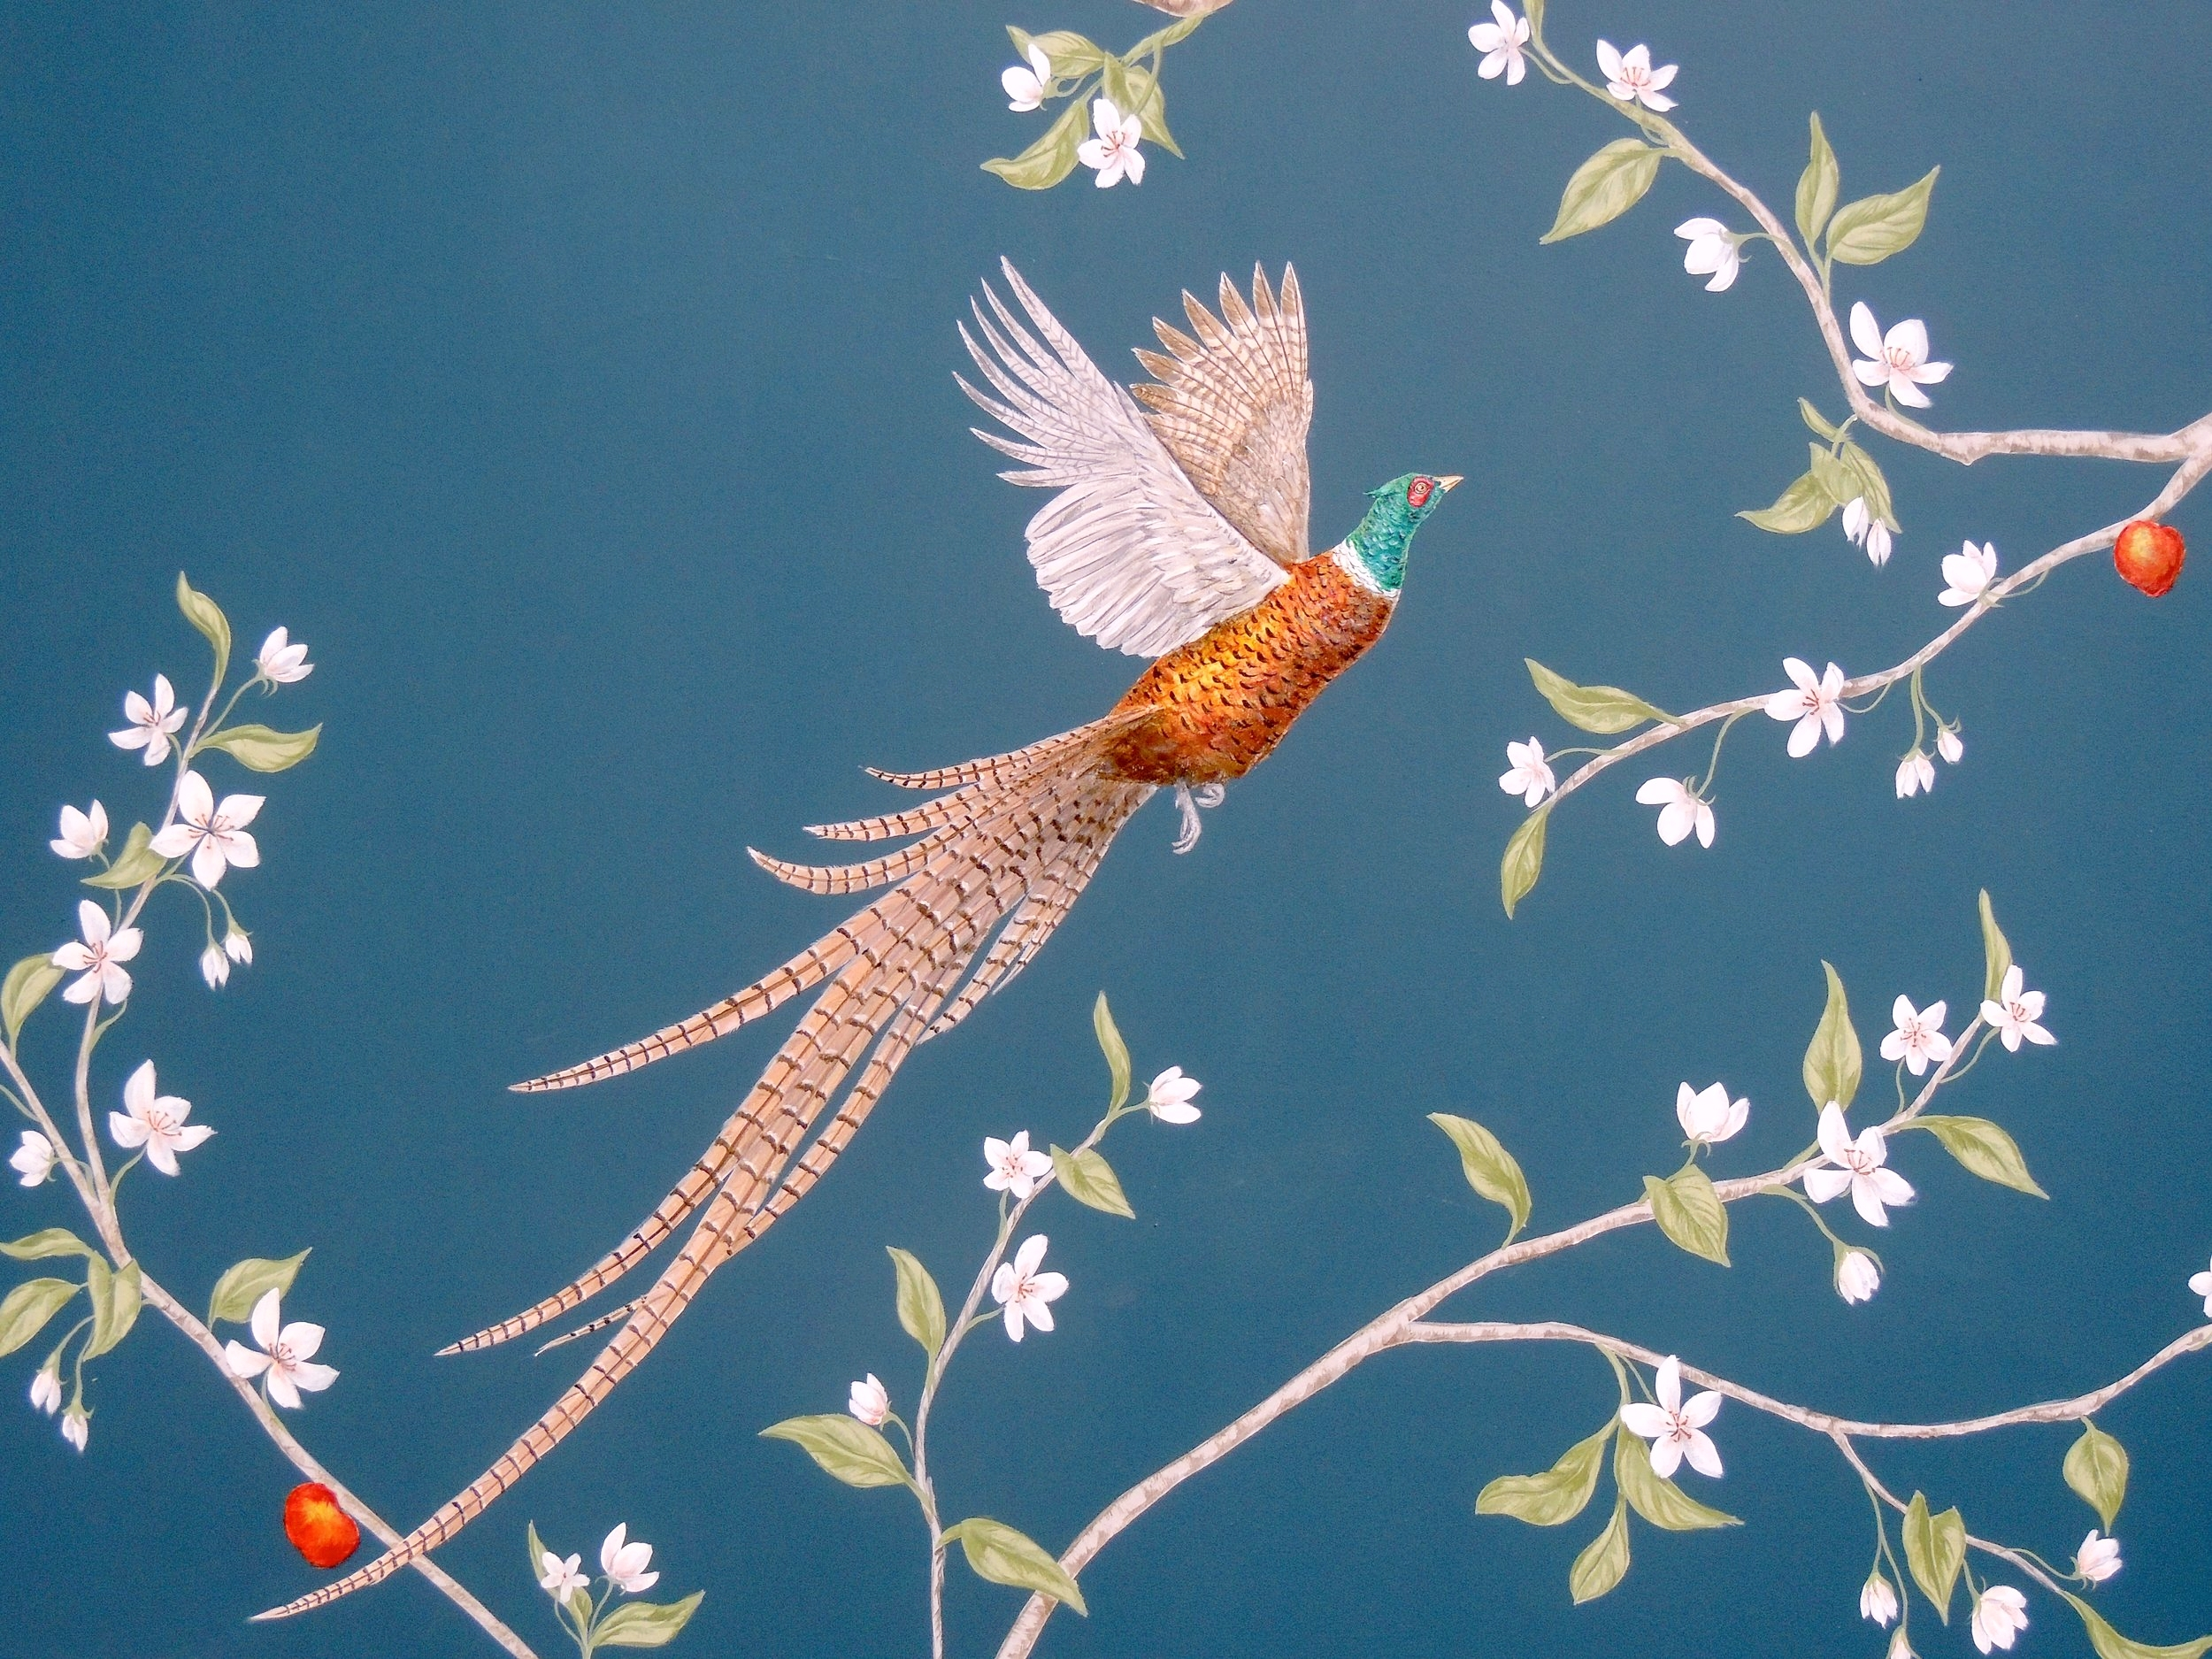 Collared Pheasant and Apple Blossom on blue, wall mural by Frederick Wimsett